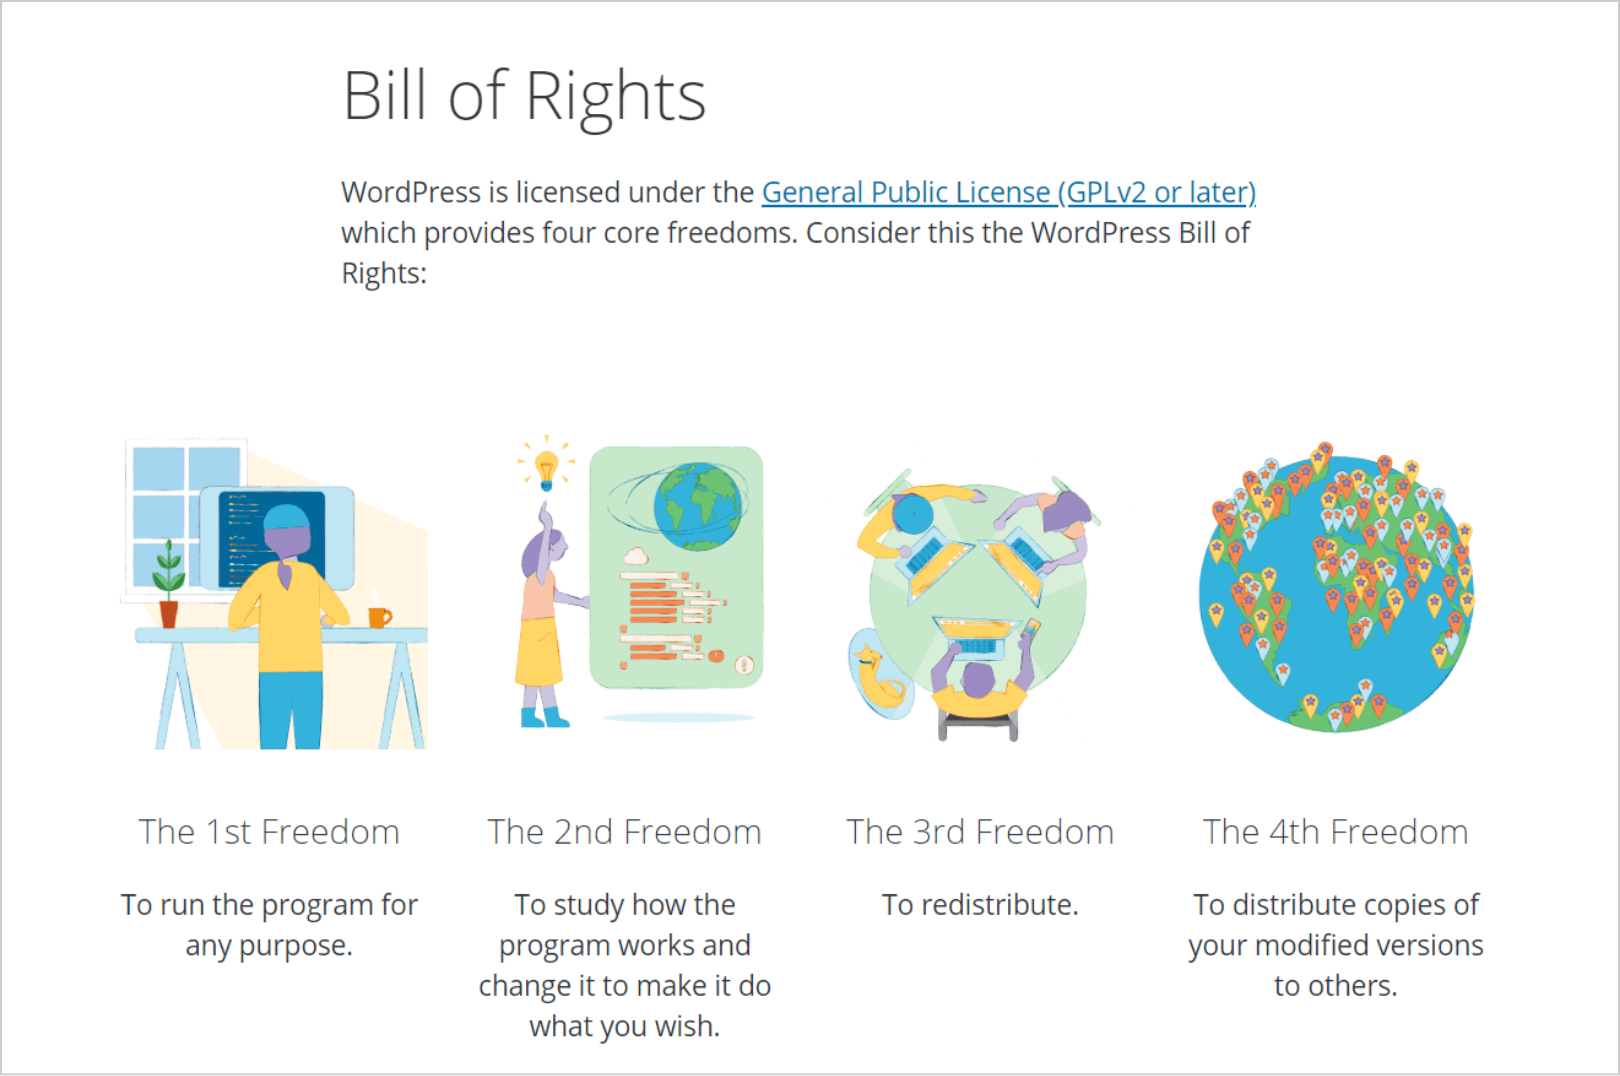 Bill of Rights on WordPress.org